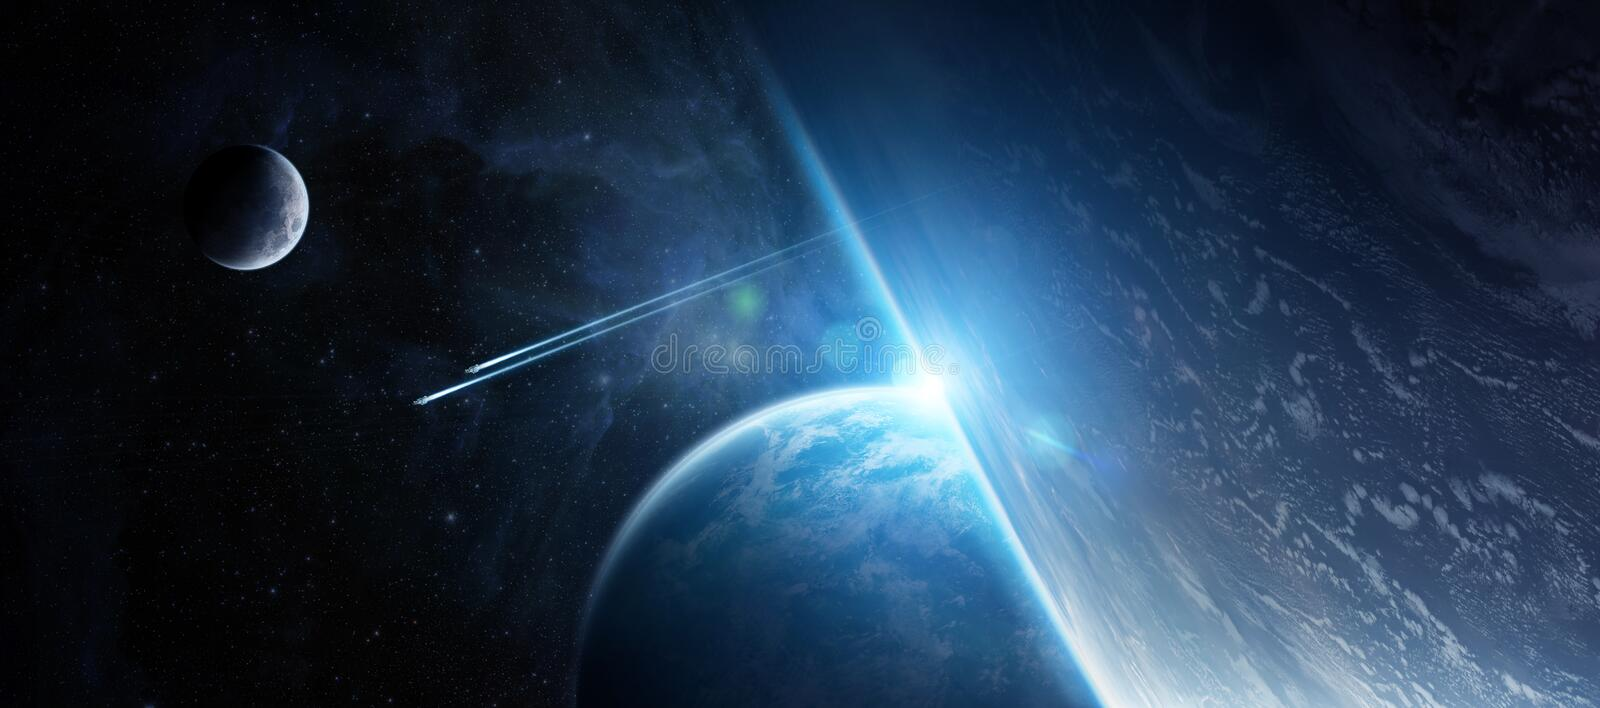 Sunrise over distant planet system in space 3D rendering element royalty free illustration